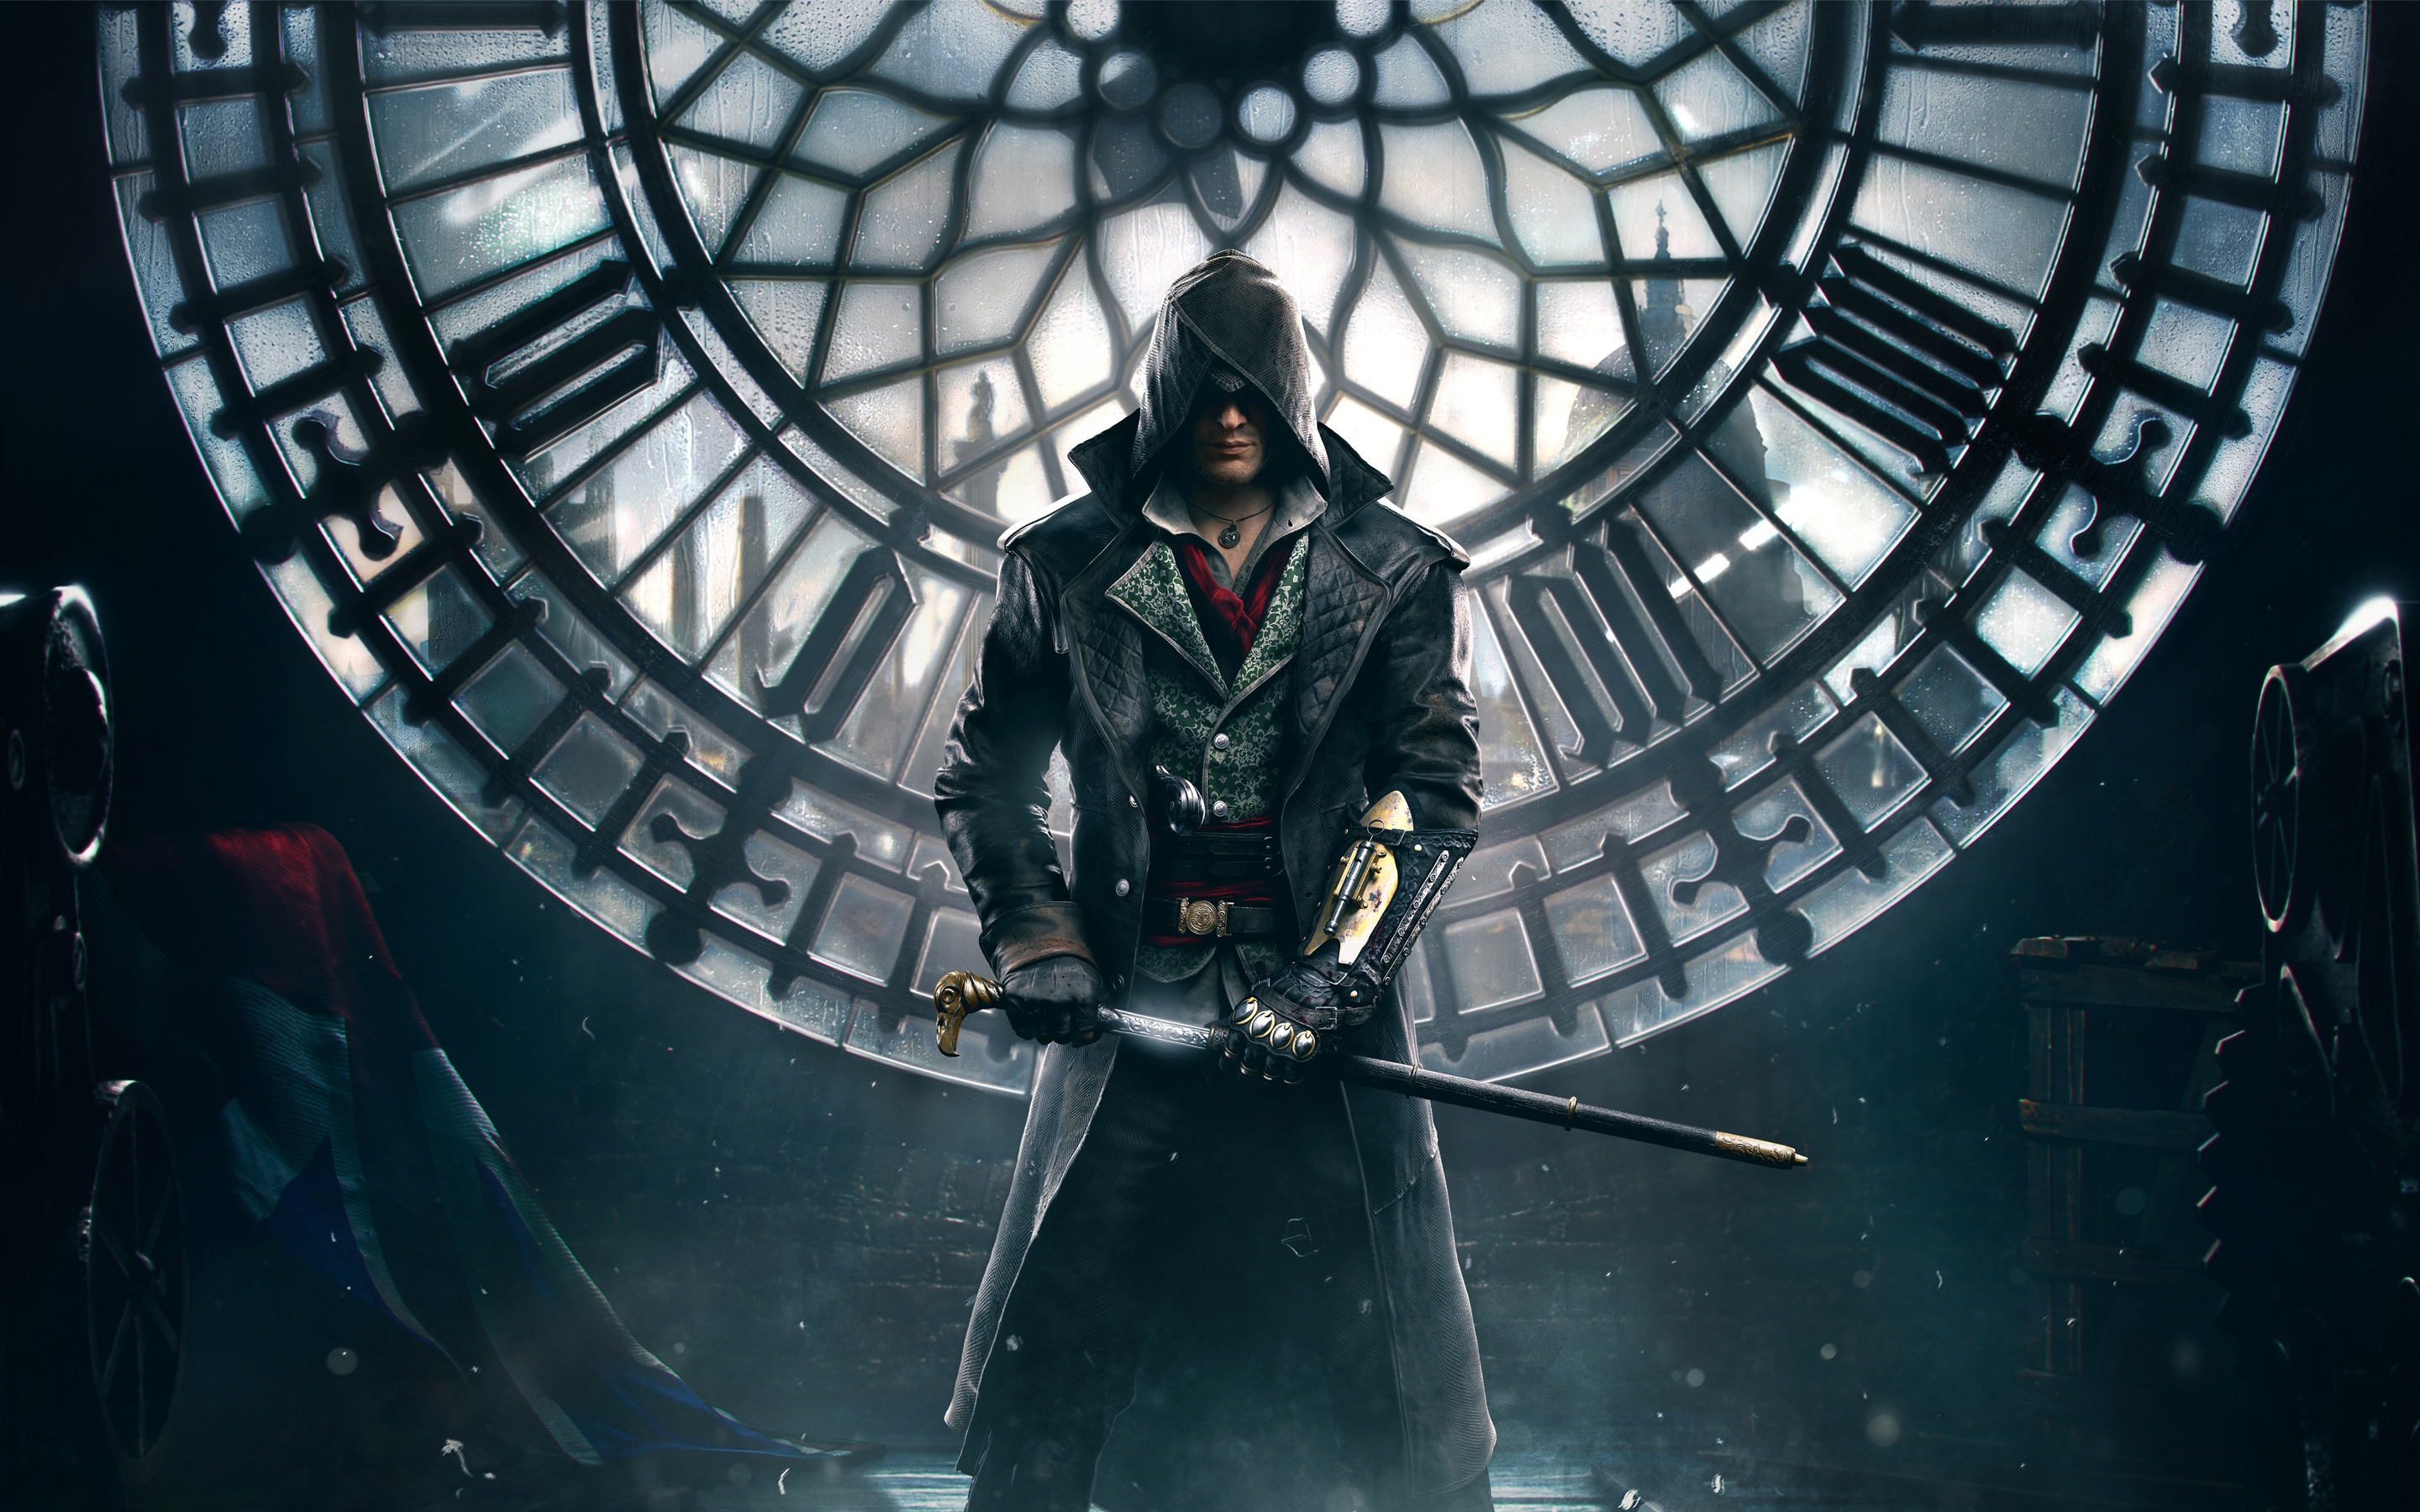 Ubisoft-Assassin's Creed Syndicate-26Outubro2015